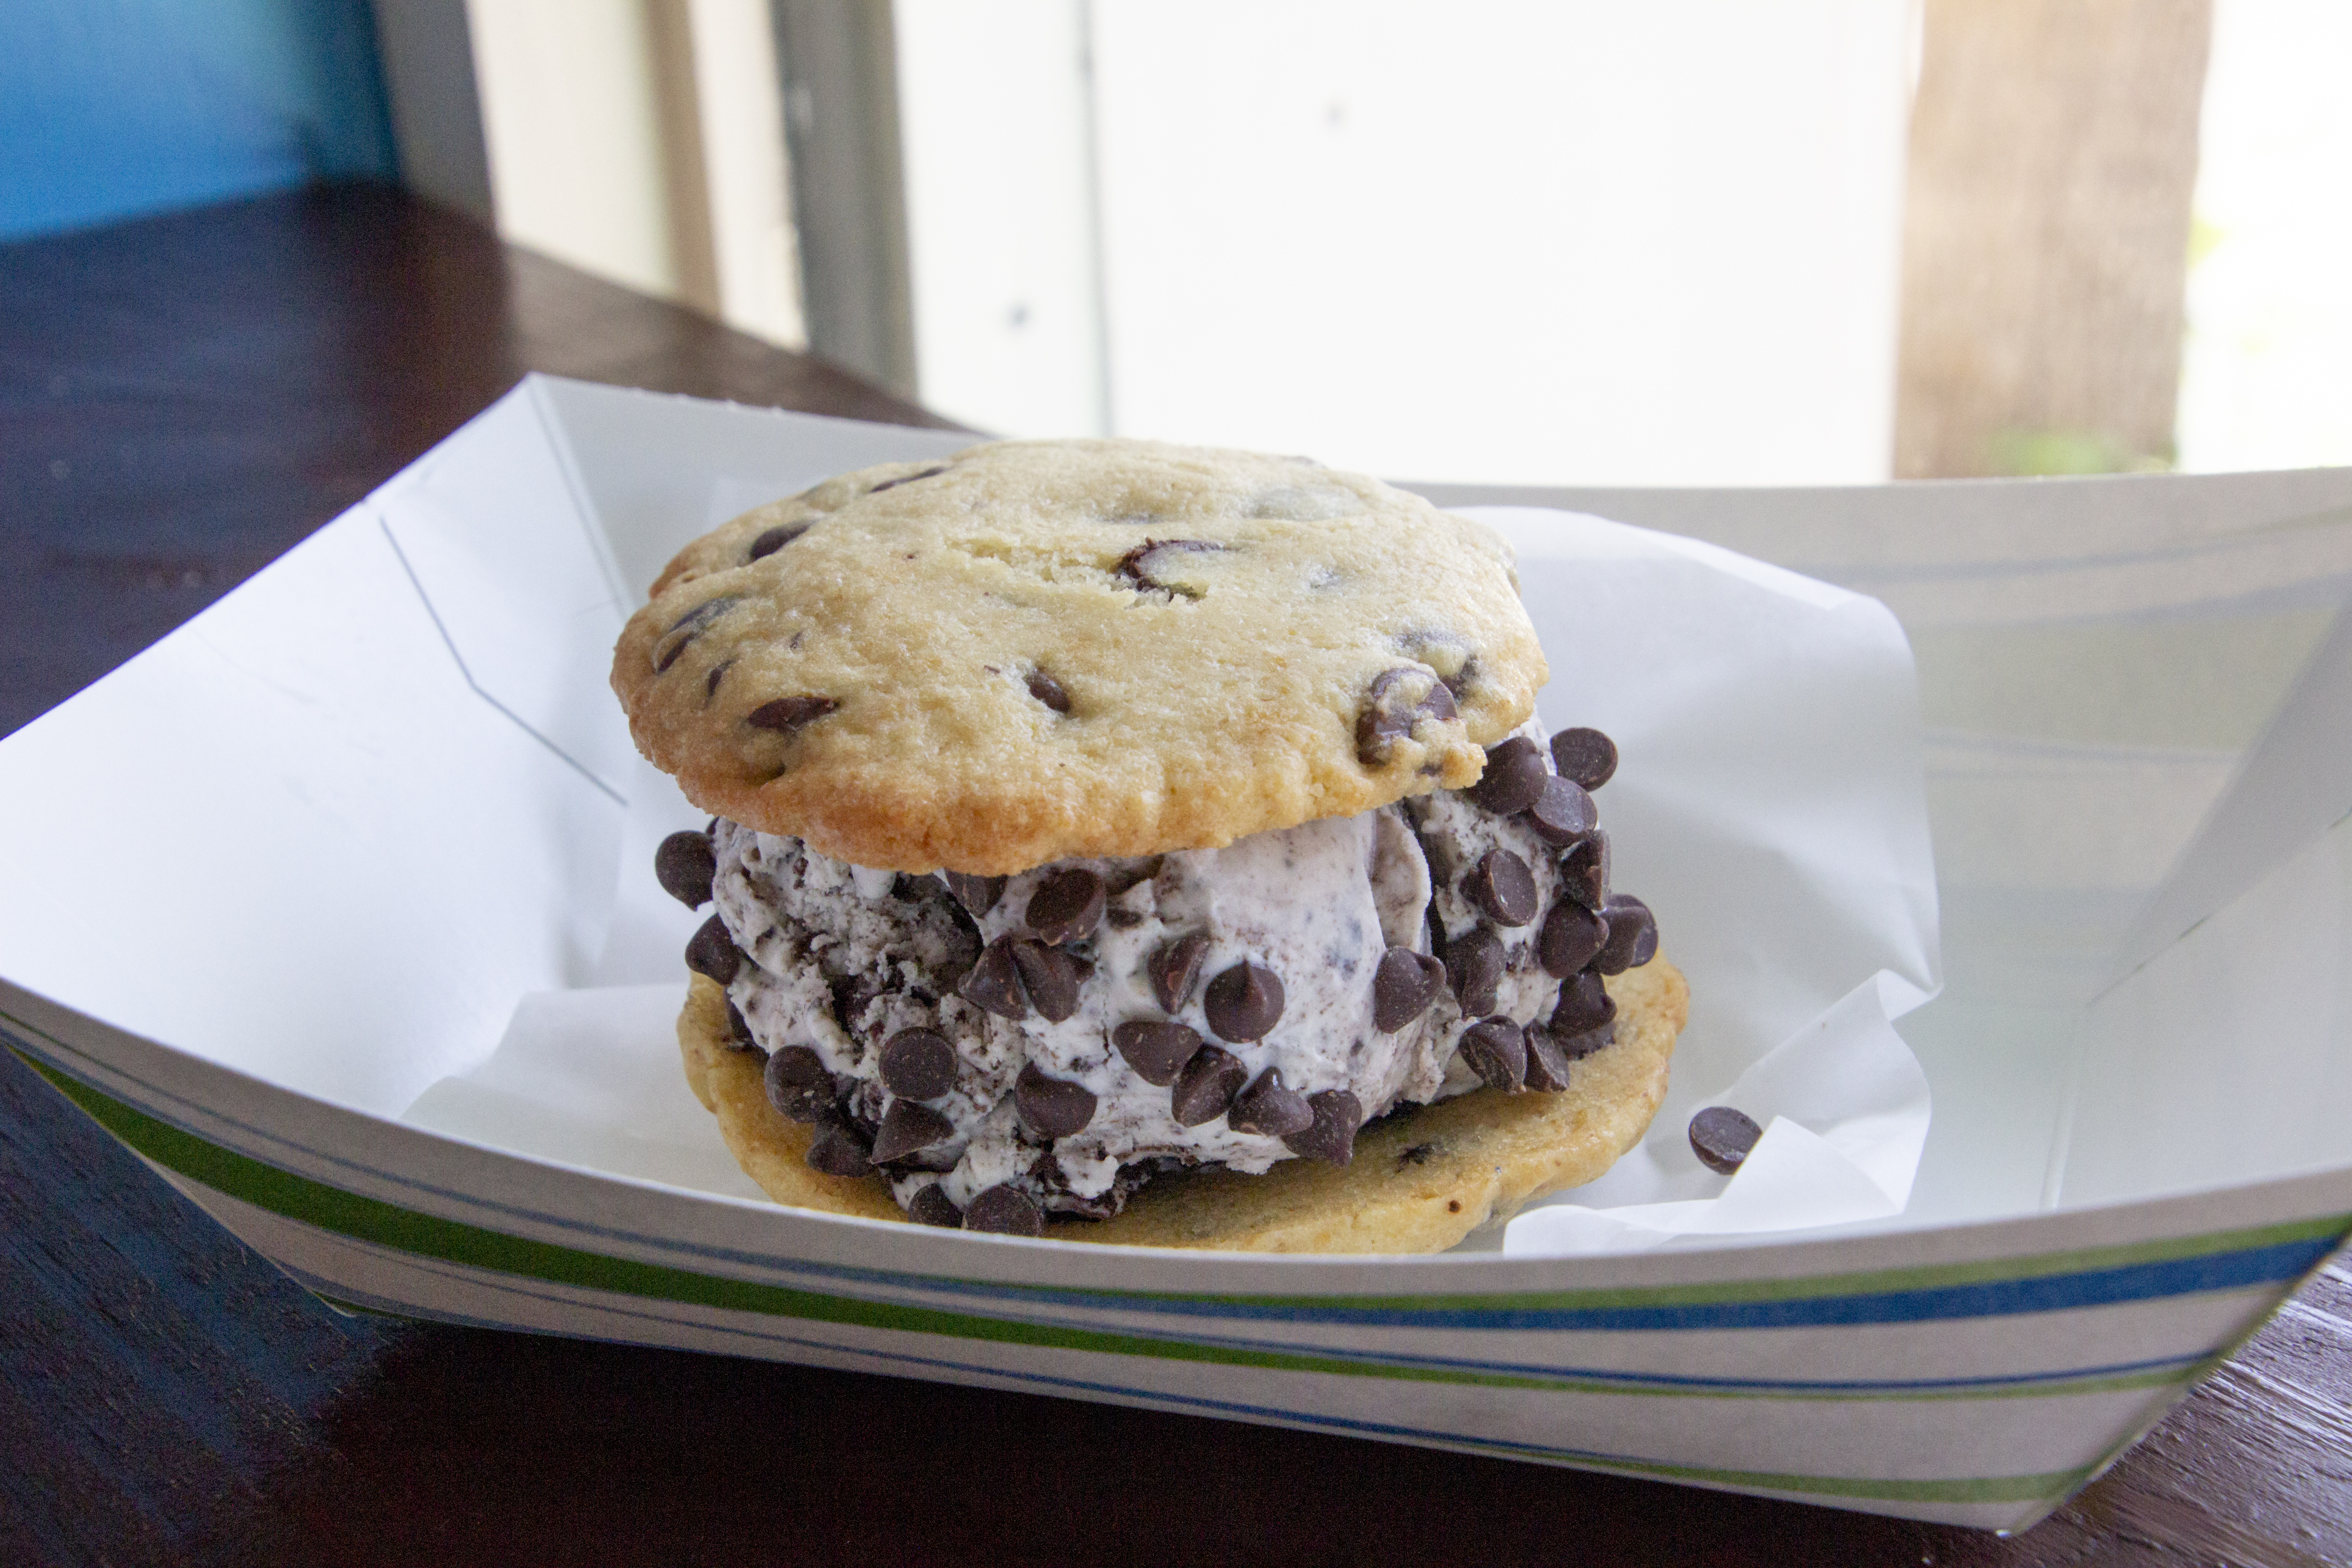 Chocolate Chip Cookies with Cookies & Cream and Chocolate Chips